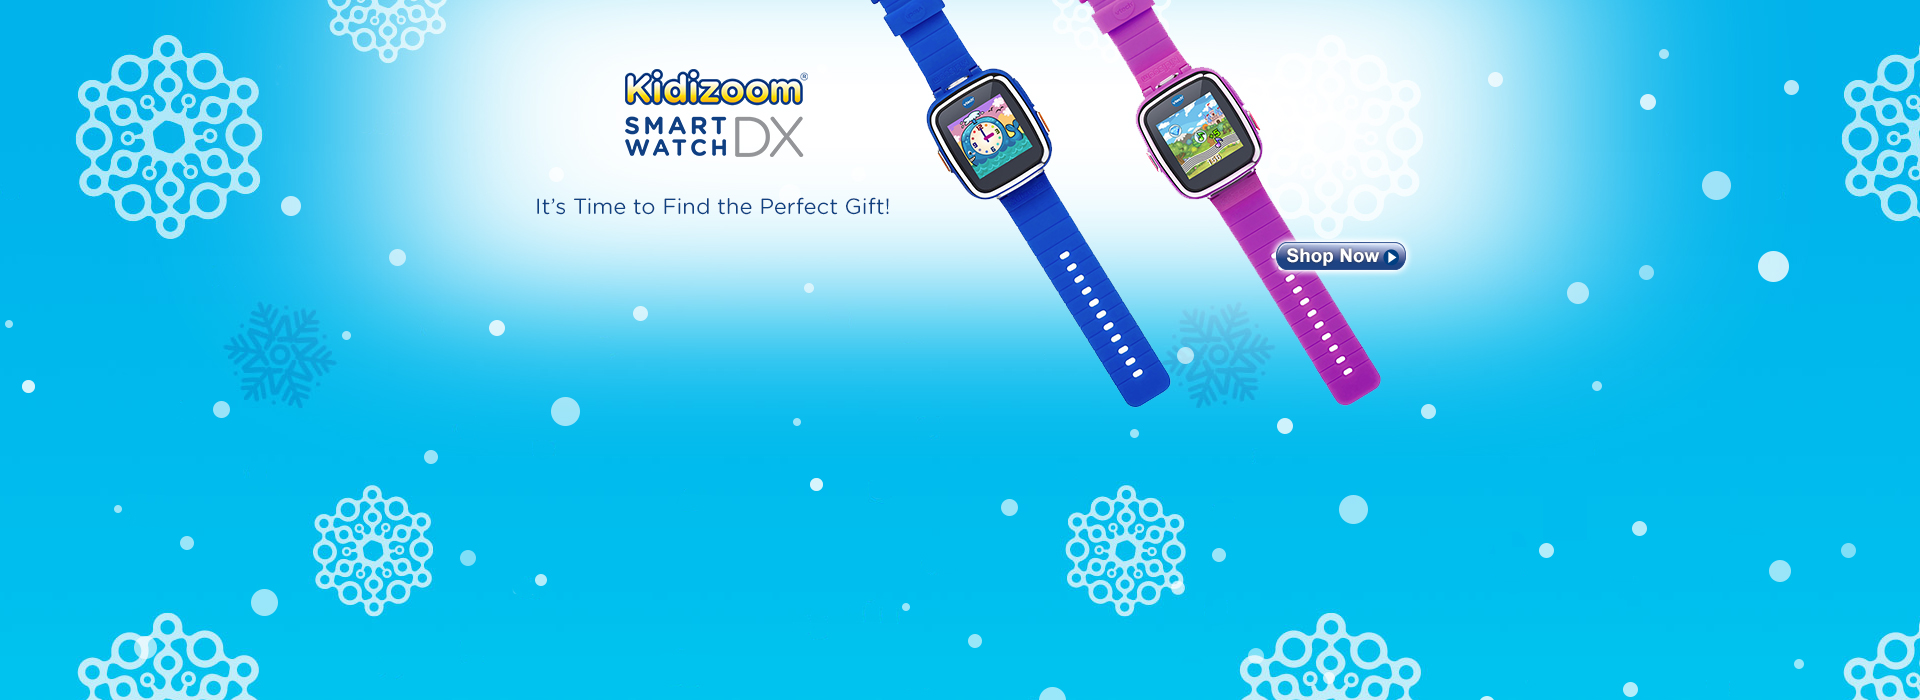 Smartwatch DX